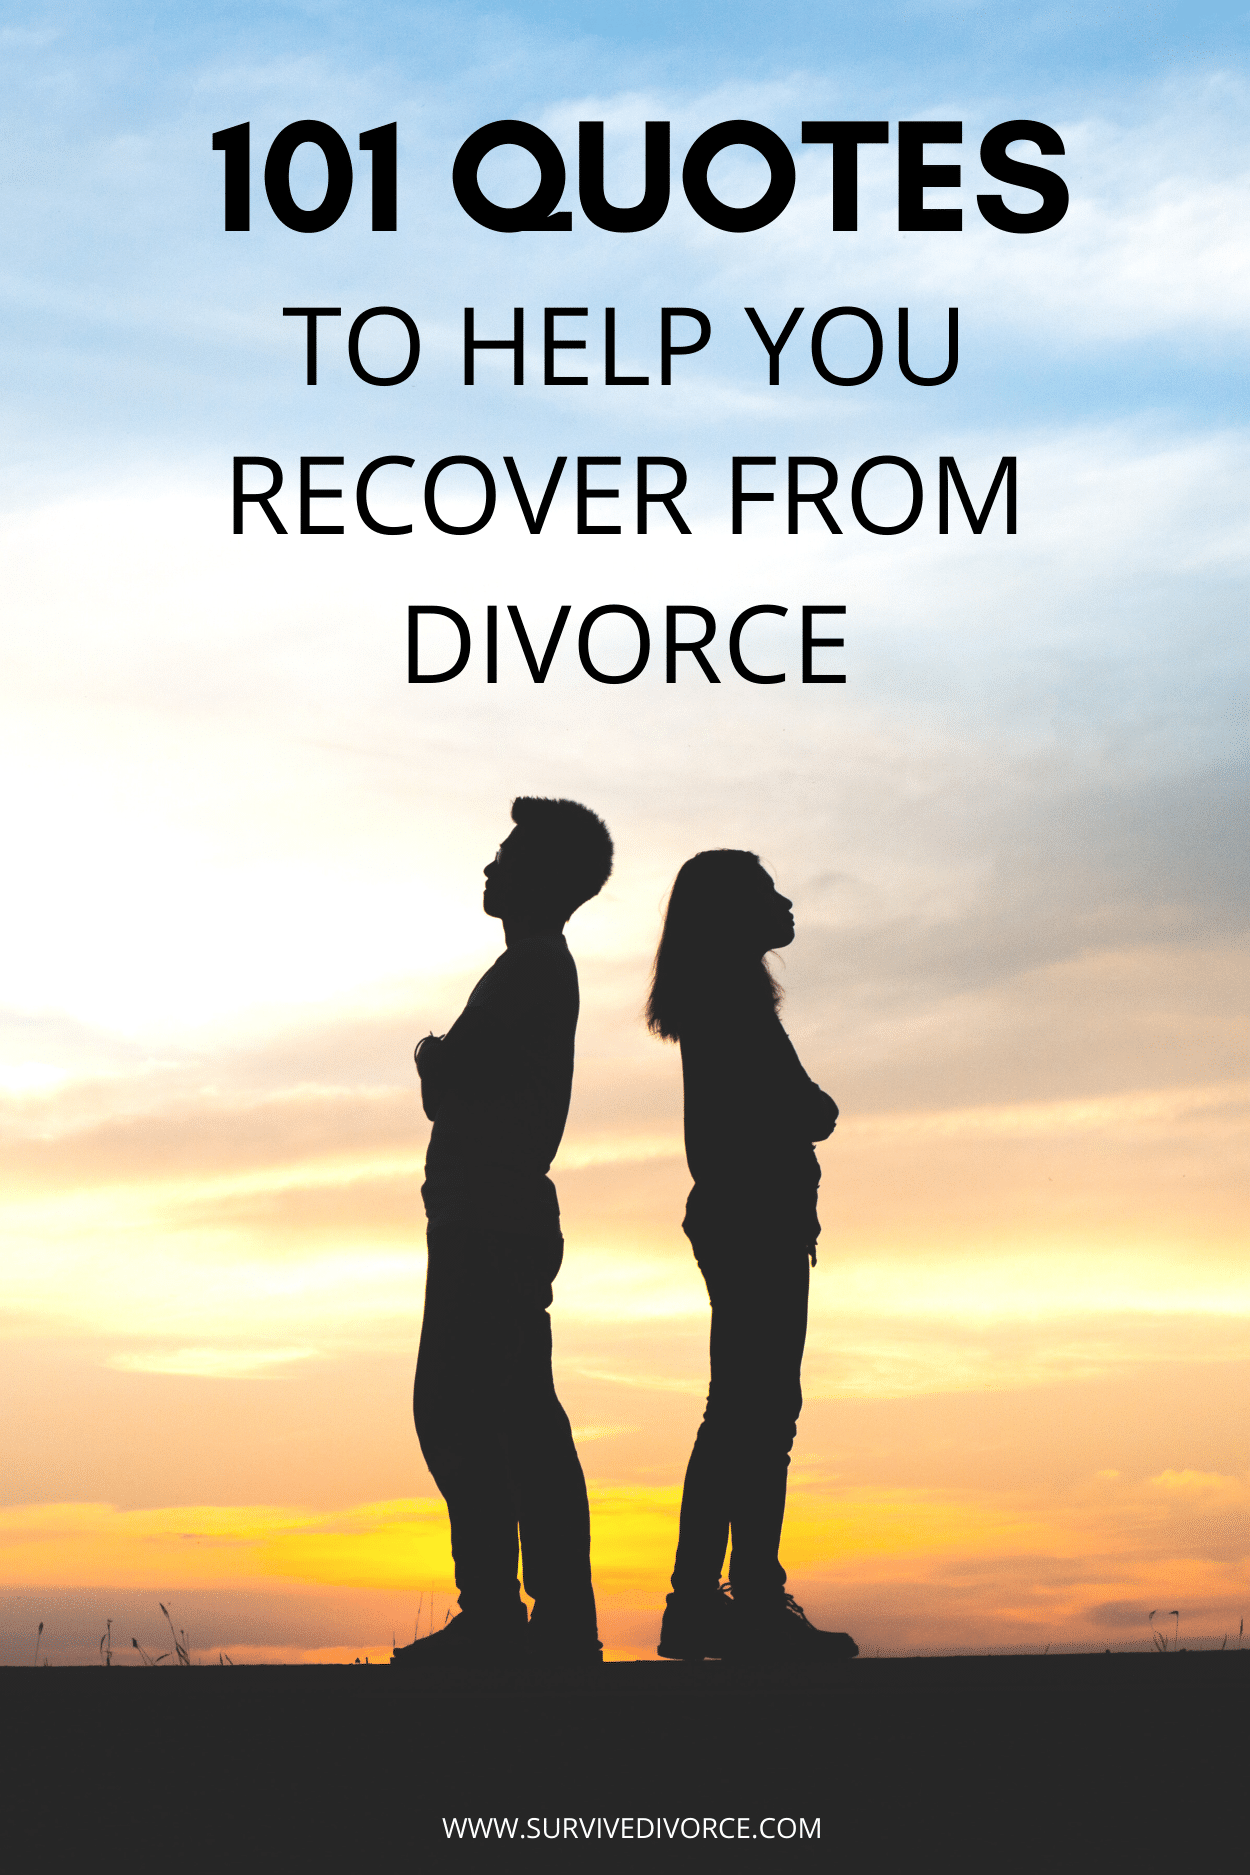 101 Divorce Quotes: Divorce Quotes For Getting Through